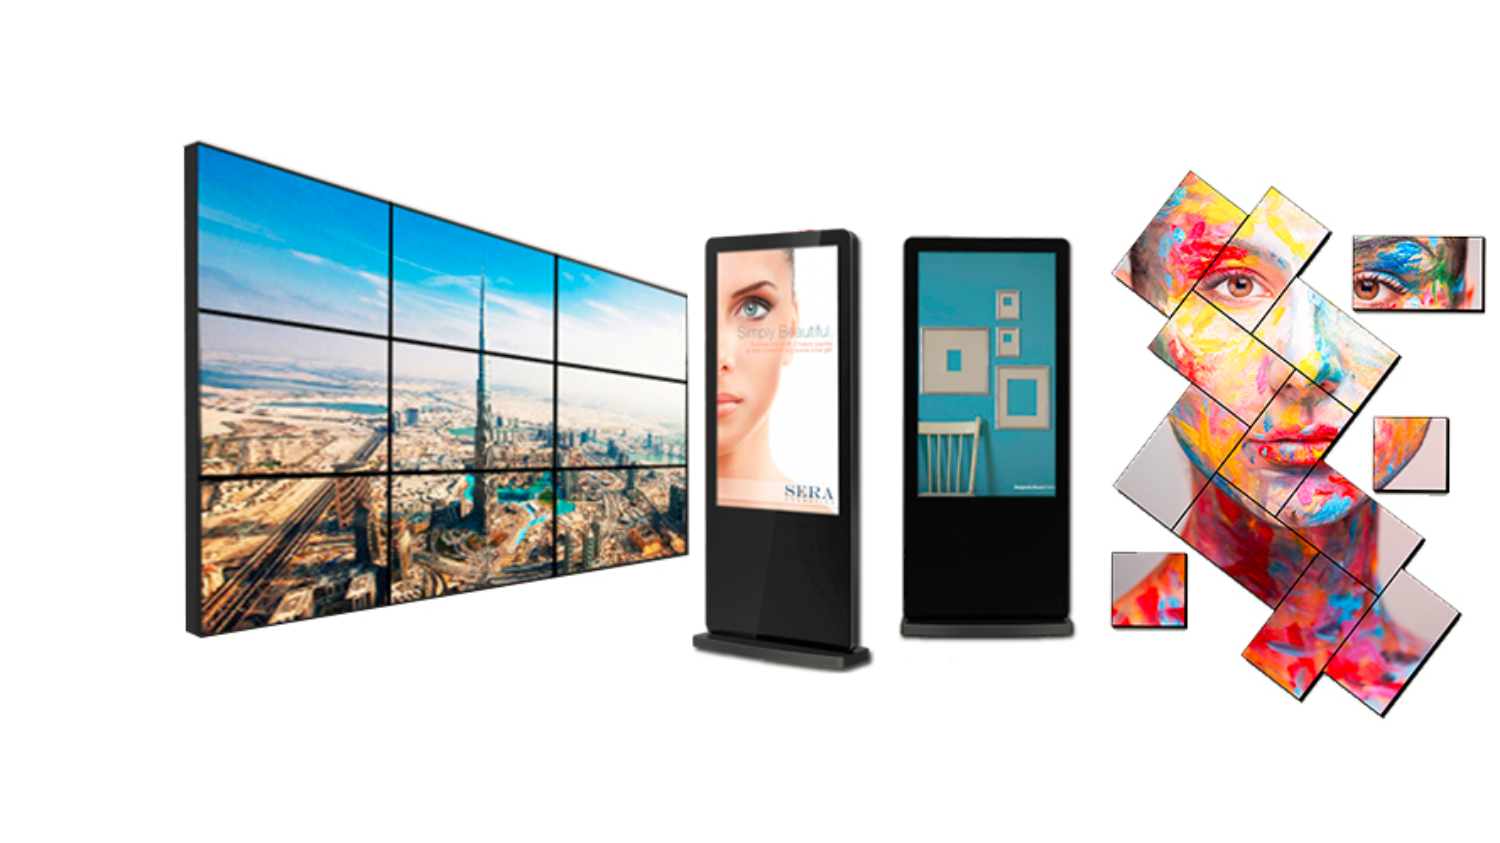 CONTENT MANAGEMENT SOLUTION – DIGITAL SIGNAGE